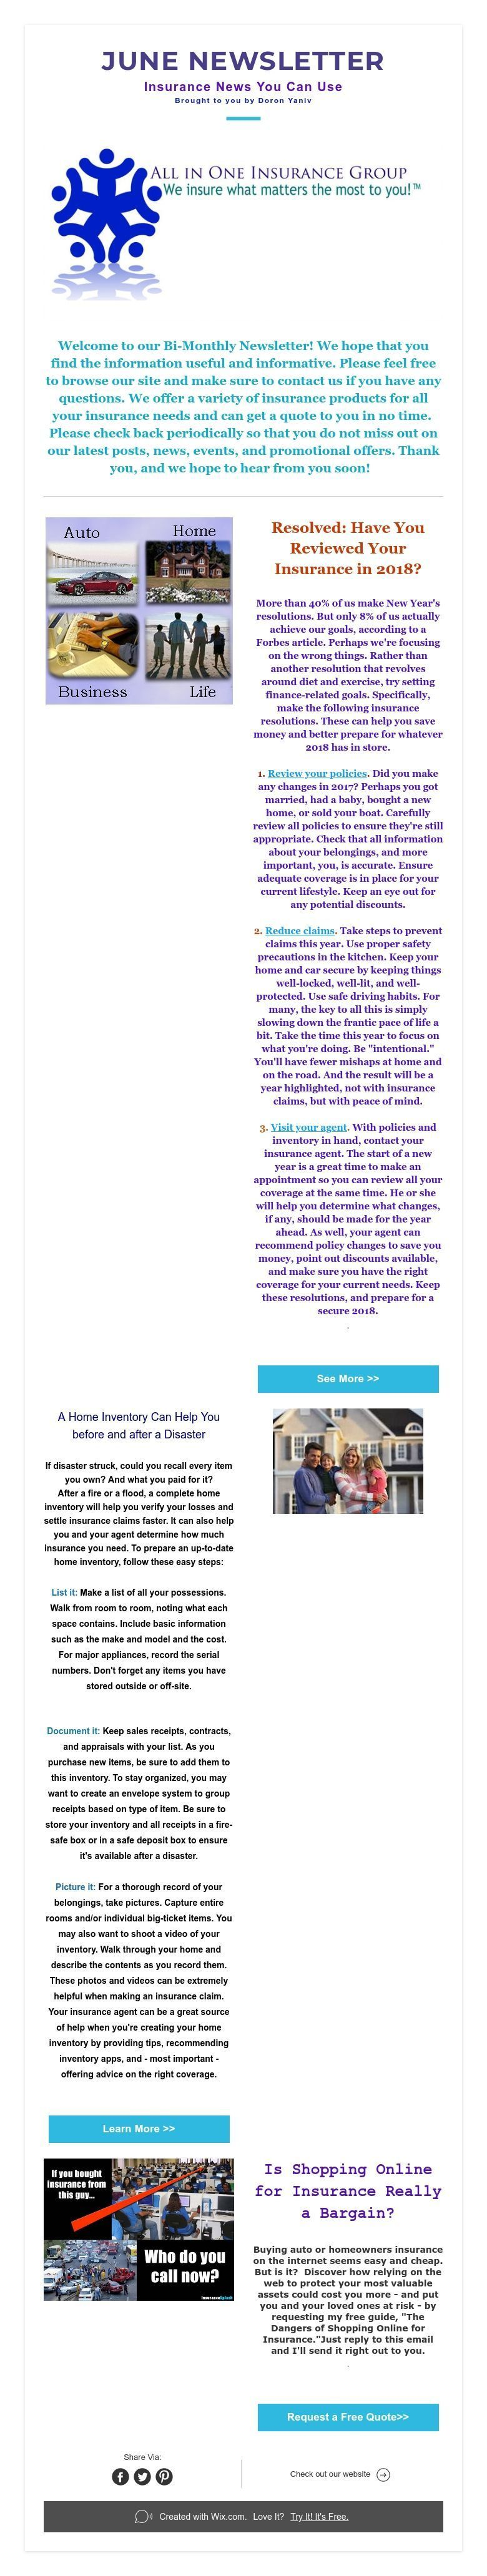 June newsletter insurance news you can use brought to you